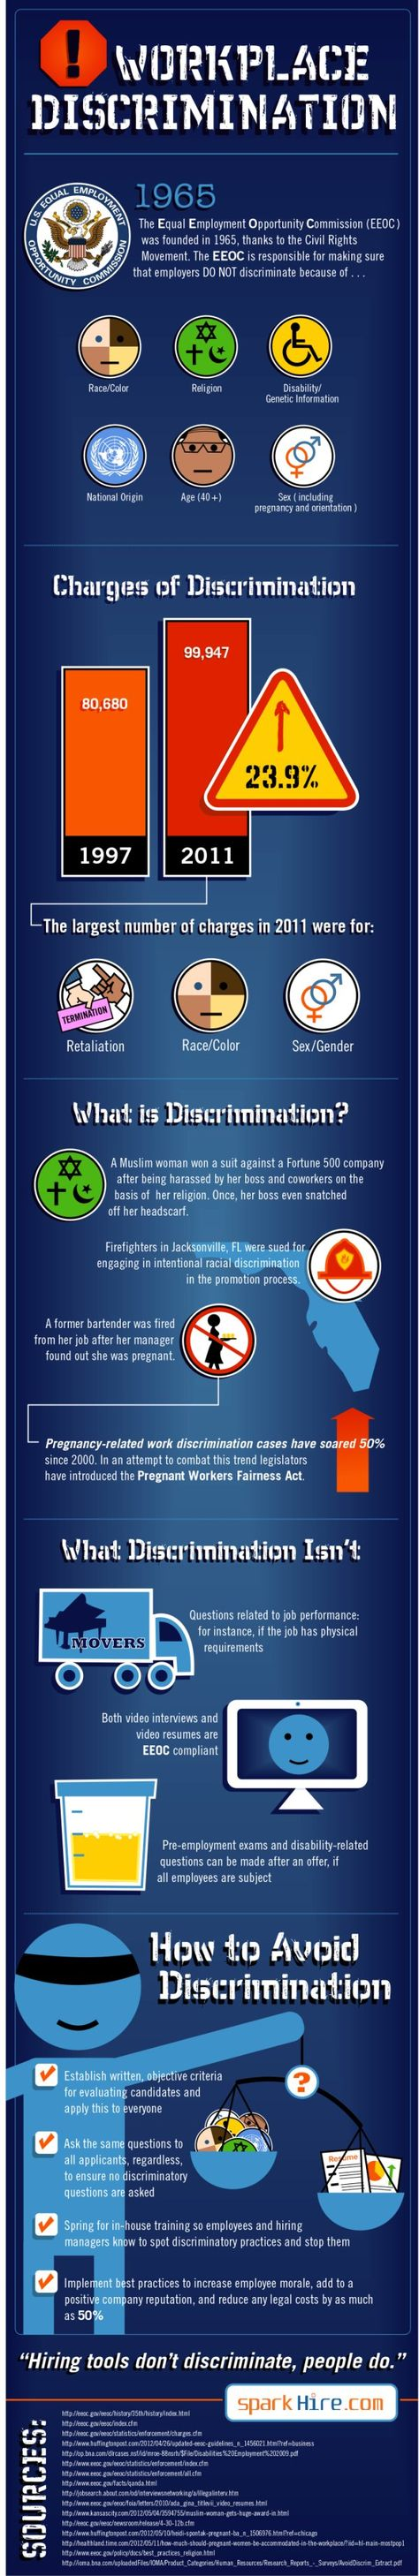 Discrimination During the Hiring Process [Infographic] - How to avoid discrimination in the hiring process is a tricky, but extremely important question. For many companies and recruiters, discrimination concerns can become the elephant in the room that no one wants to talk about for fear of saying the wrong thing.